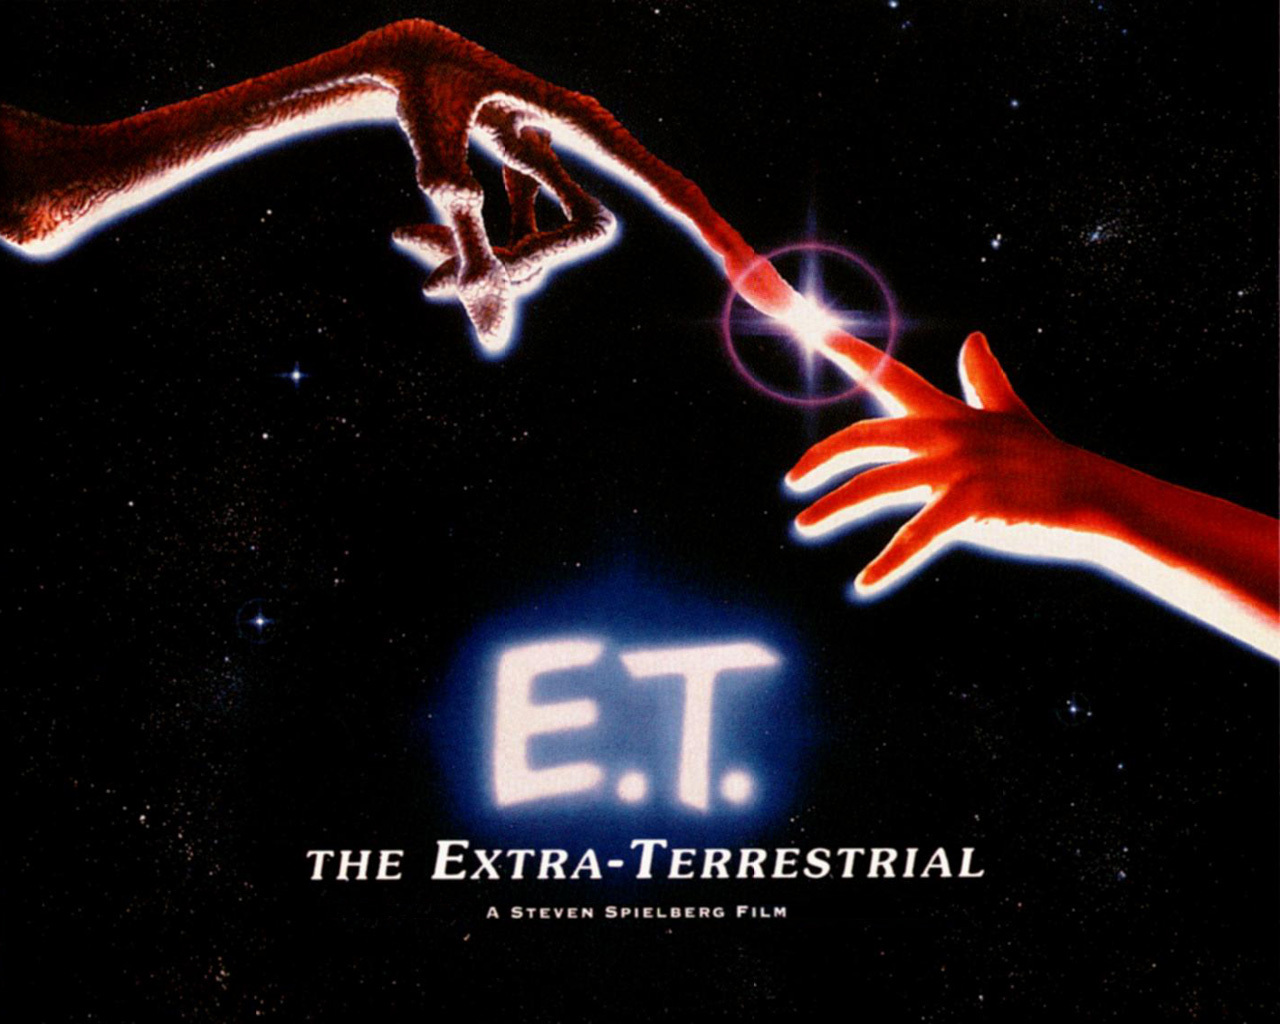 E t the extra terrestrial images e t wallpaper hd for 80s wallpaper home